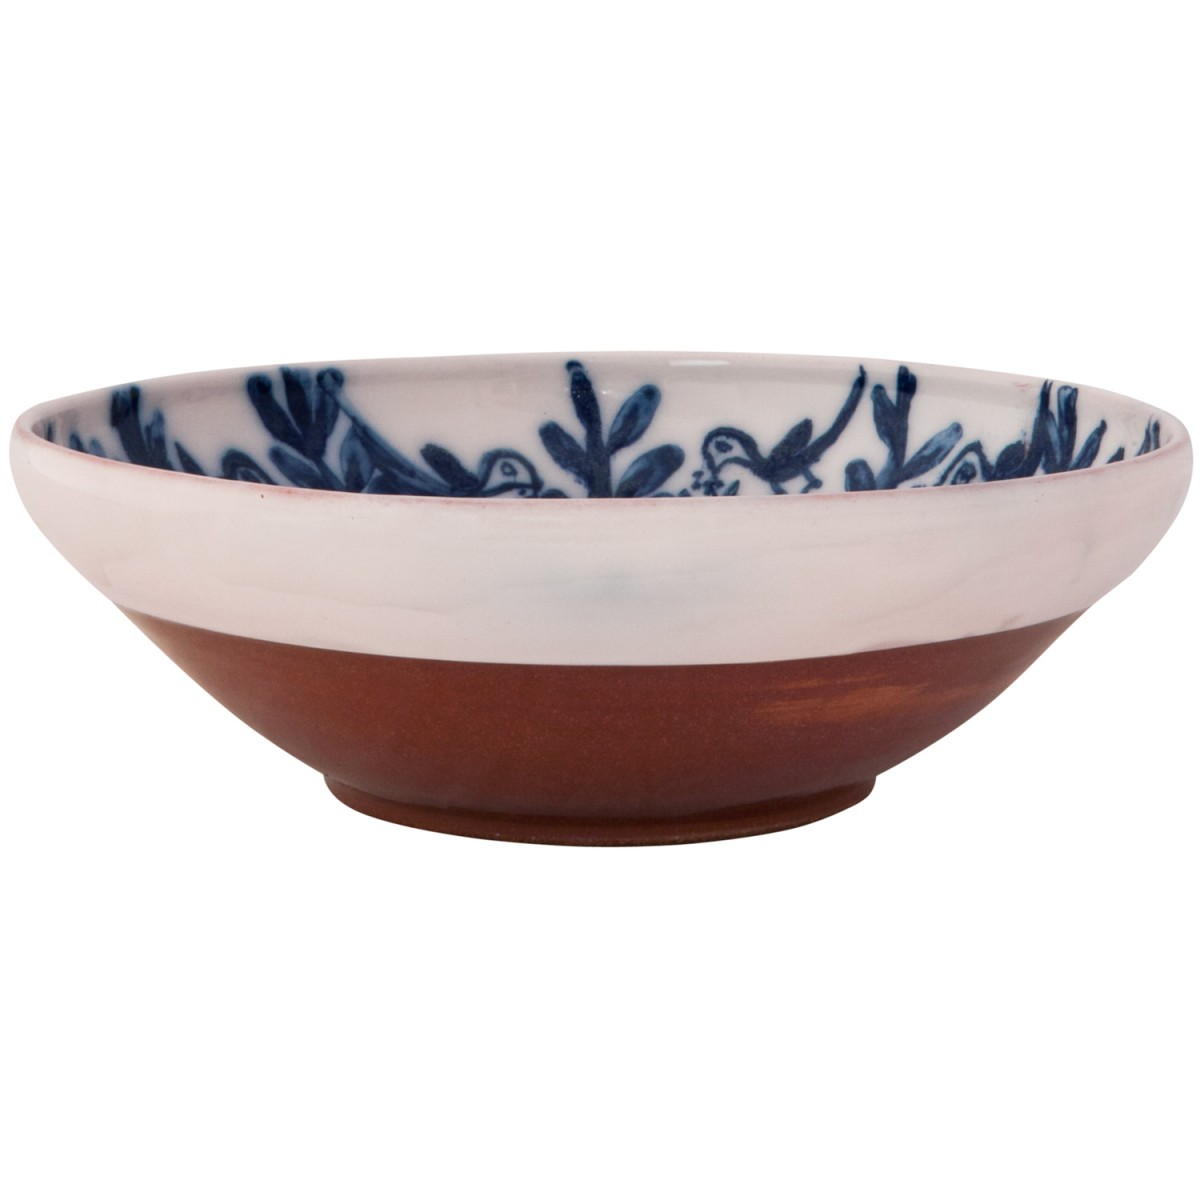 Large Decorative - Bowls Blue and White Plant and Birds - 1